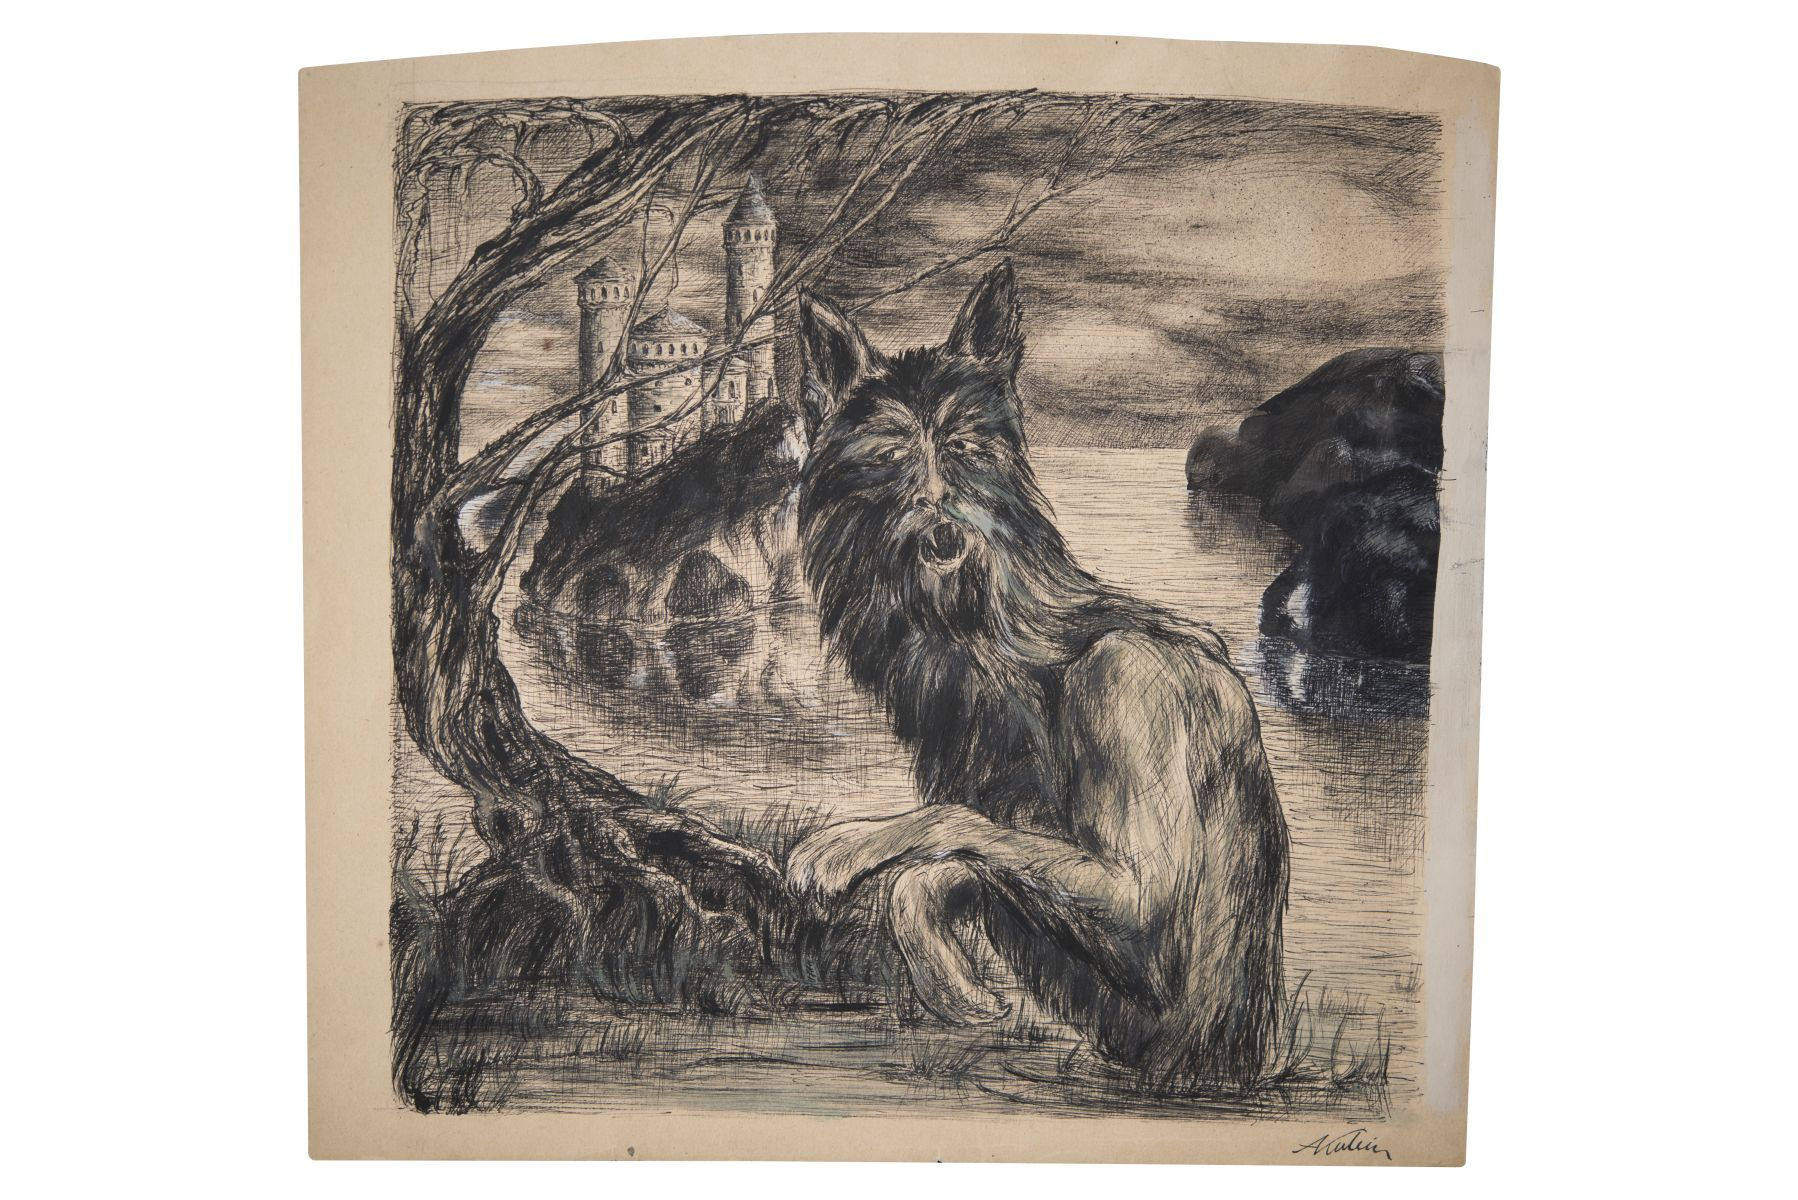 "#125 Alfred Kubin ""Indian ink drawing"" 